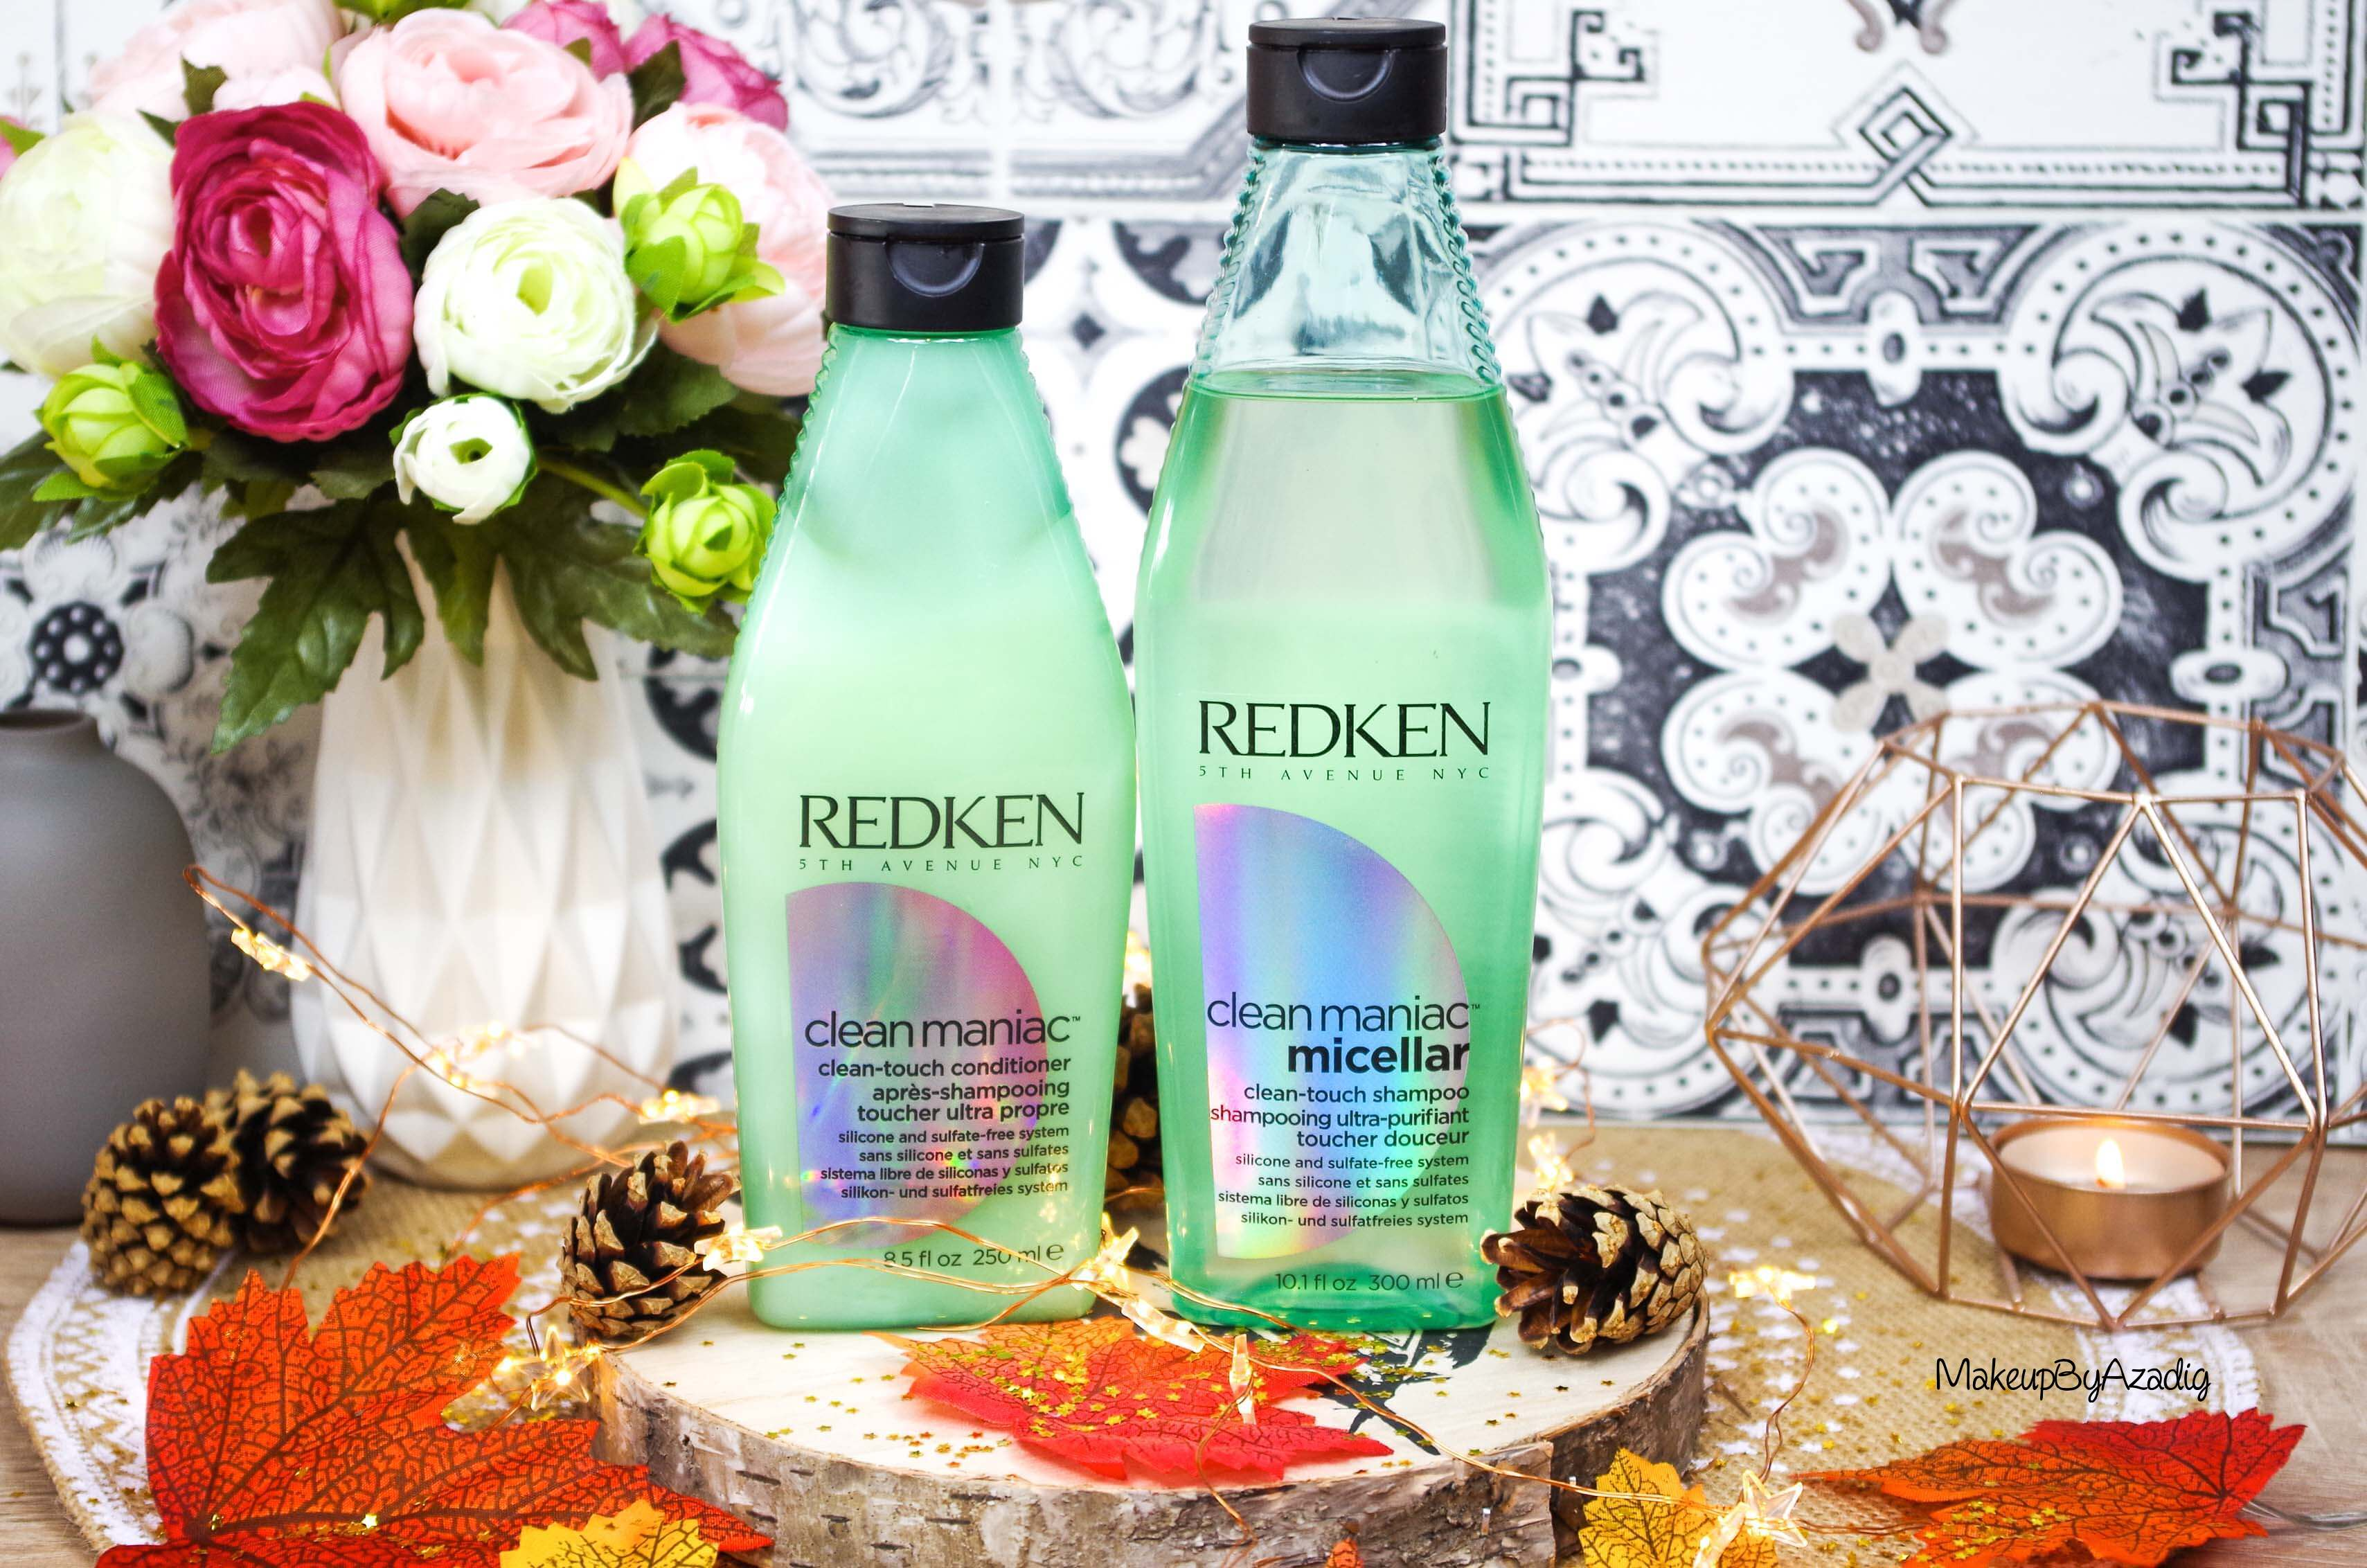 revue-shampooing-conditioner-clean-maniac-redken-programme-detox-anti-pollution-makeupbyazadig-cleanhair-sans-silicone-sulfate-faience